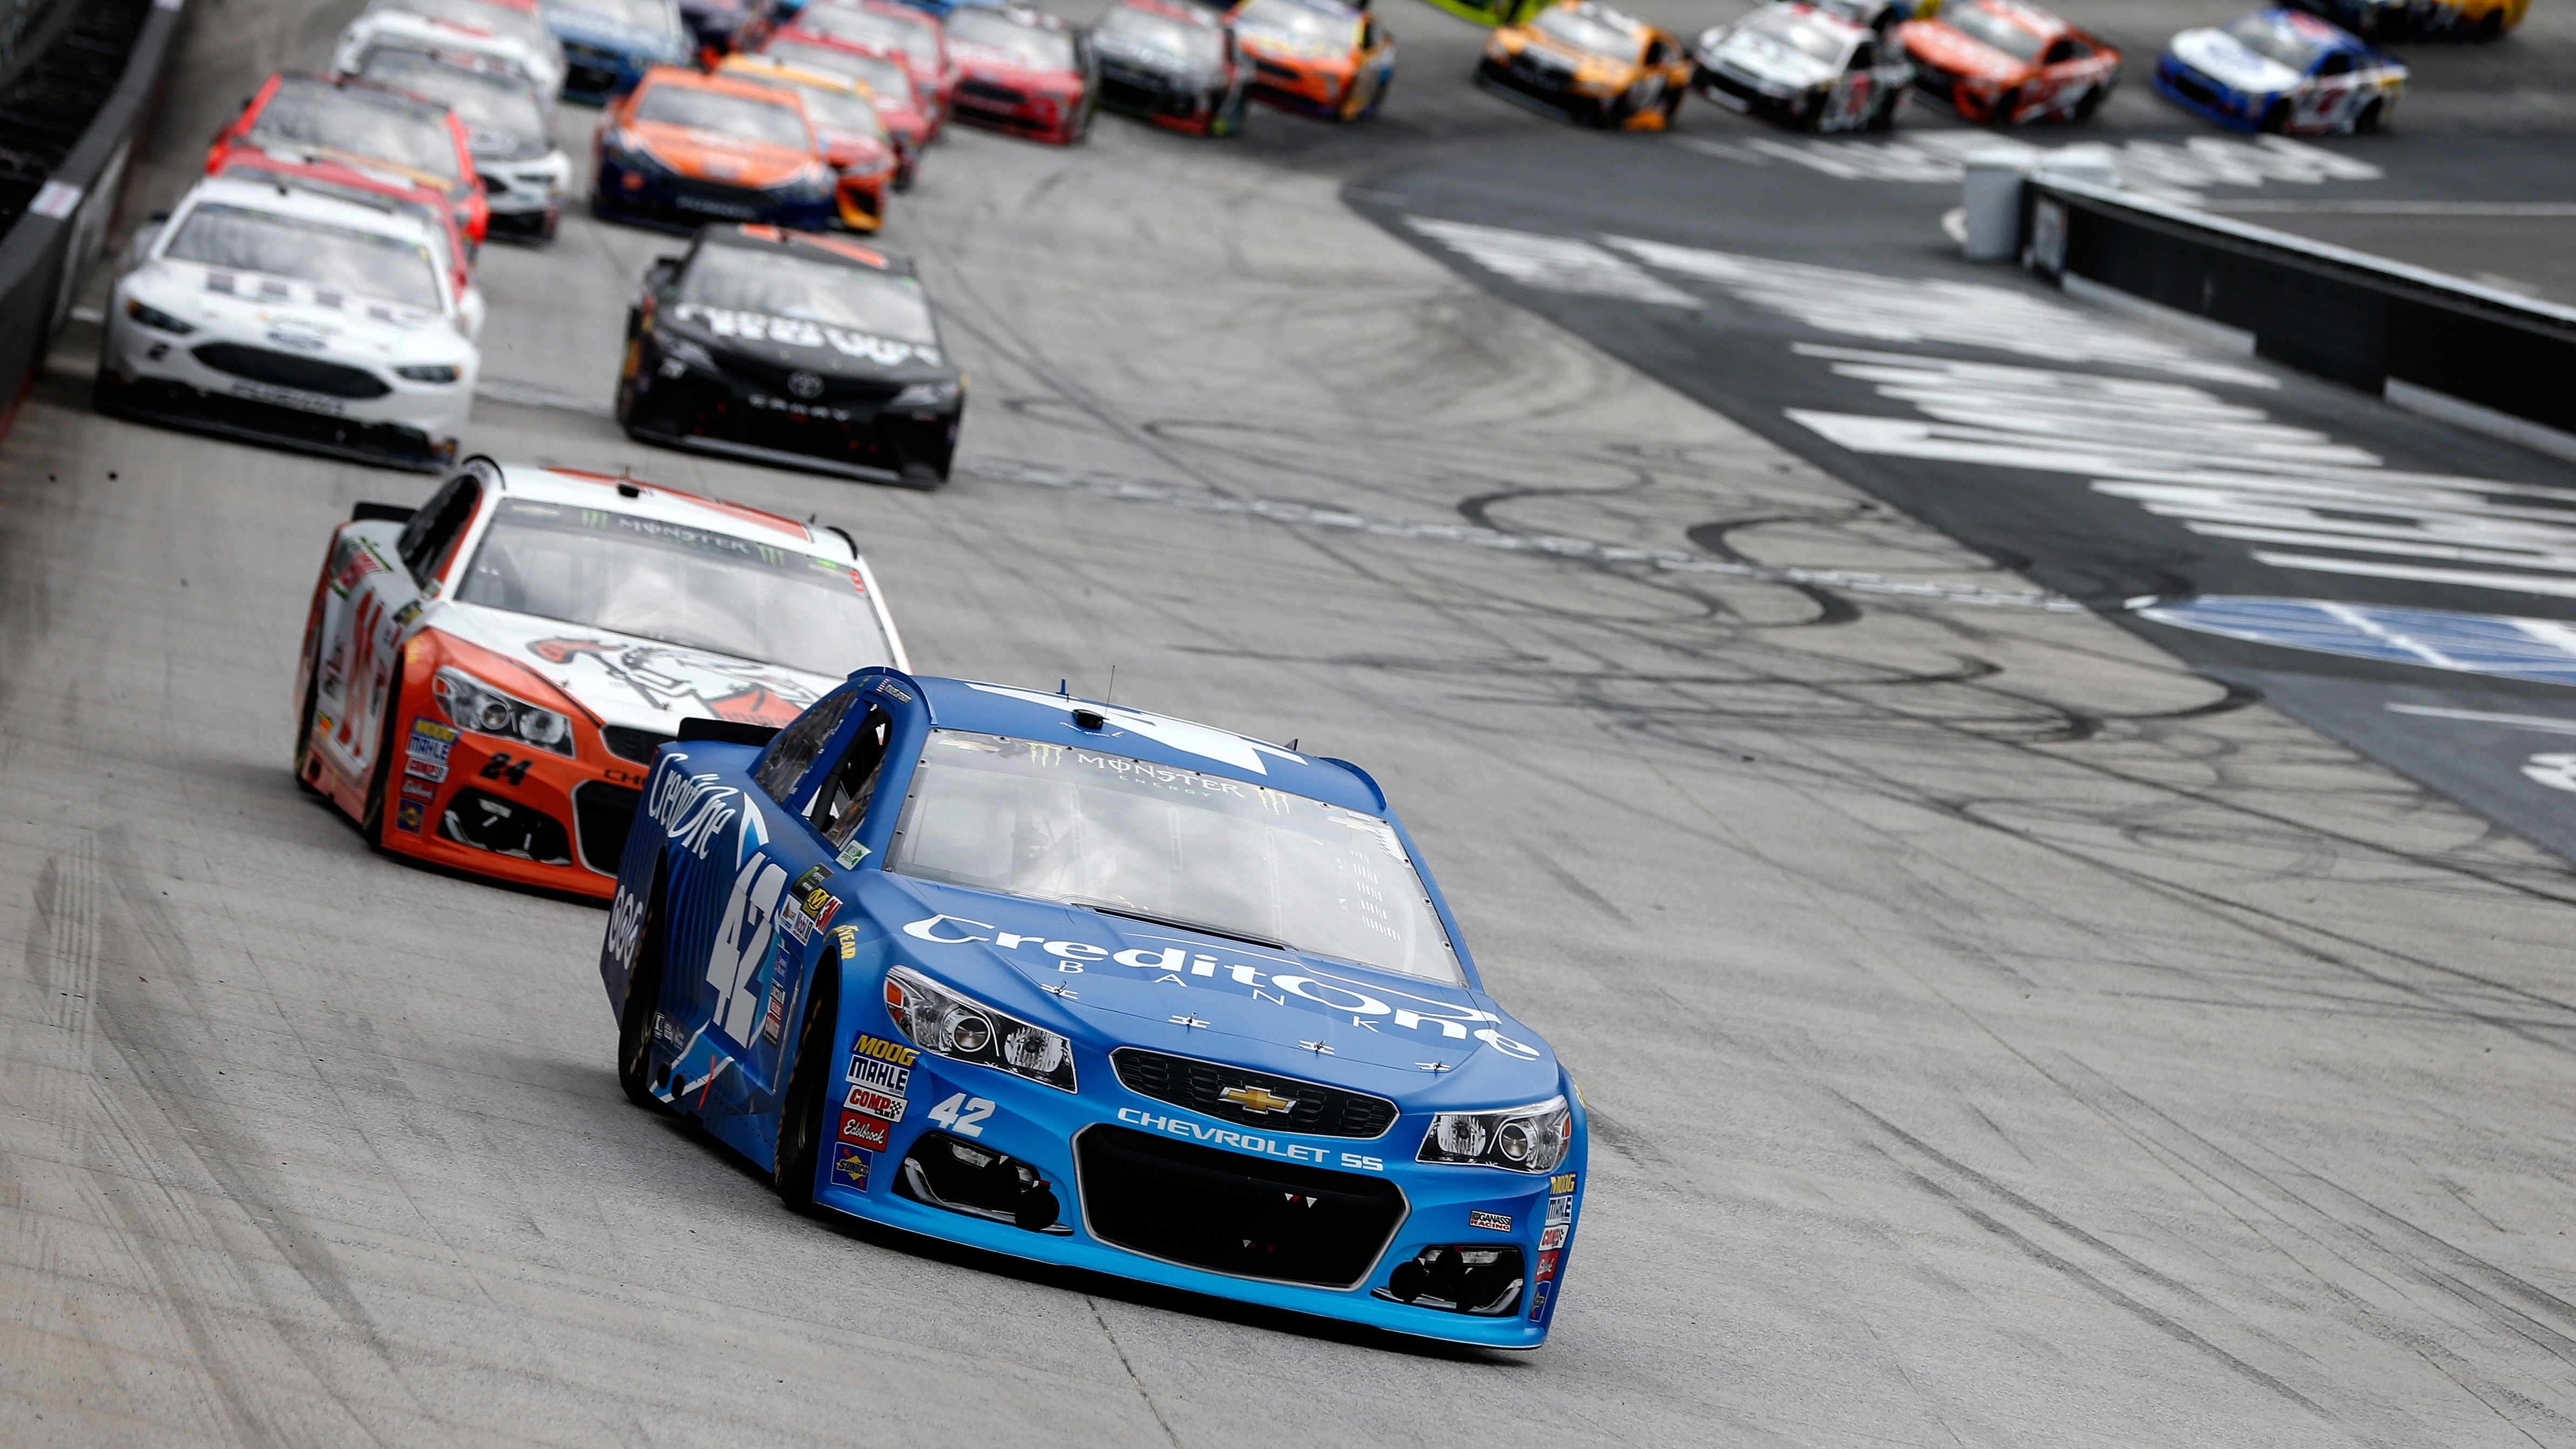 BRISTOL, TN - APRIL 24:  Kyle Larson, driver of the #42 Credit One Bank Chevrolet, leads a pack of cars during the Monster Energy NASCAR Cup Series Food City 500 at Bristol Motor Speedway on April 24, 2017 in Bristol, Tennessee.  (Photo by Brian Lawdermilk/Getty Images)